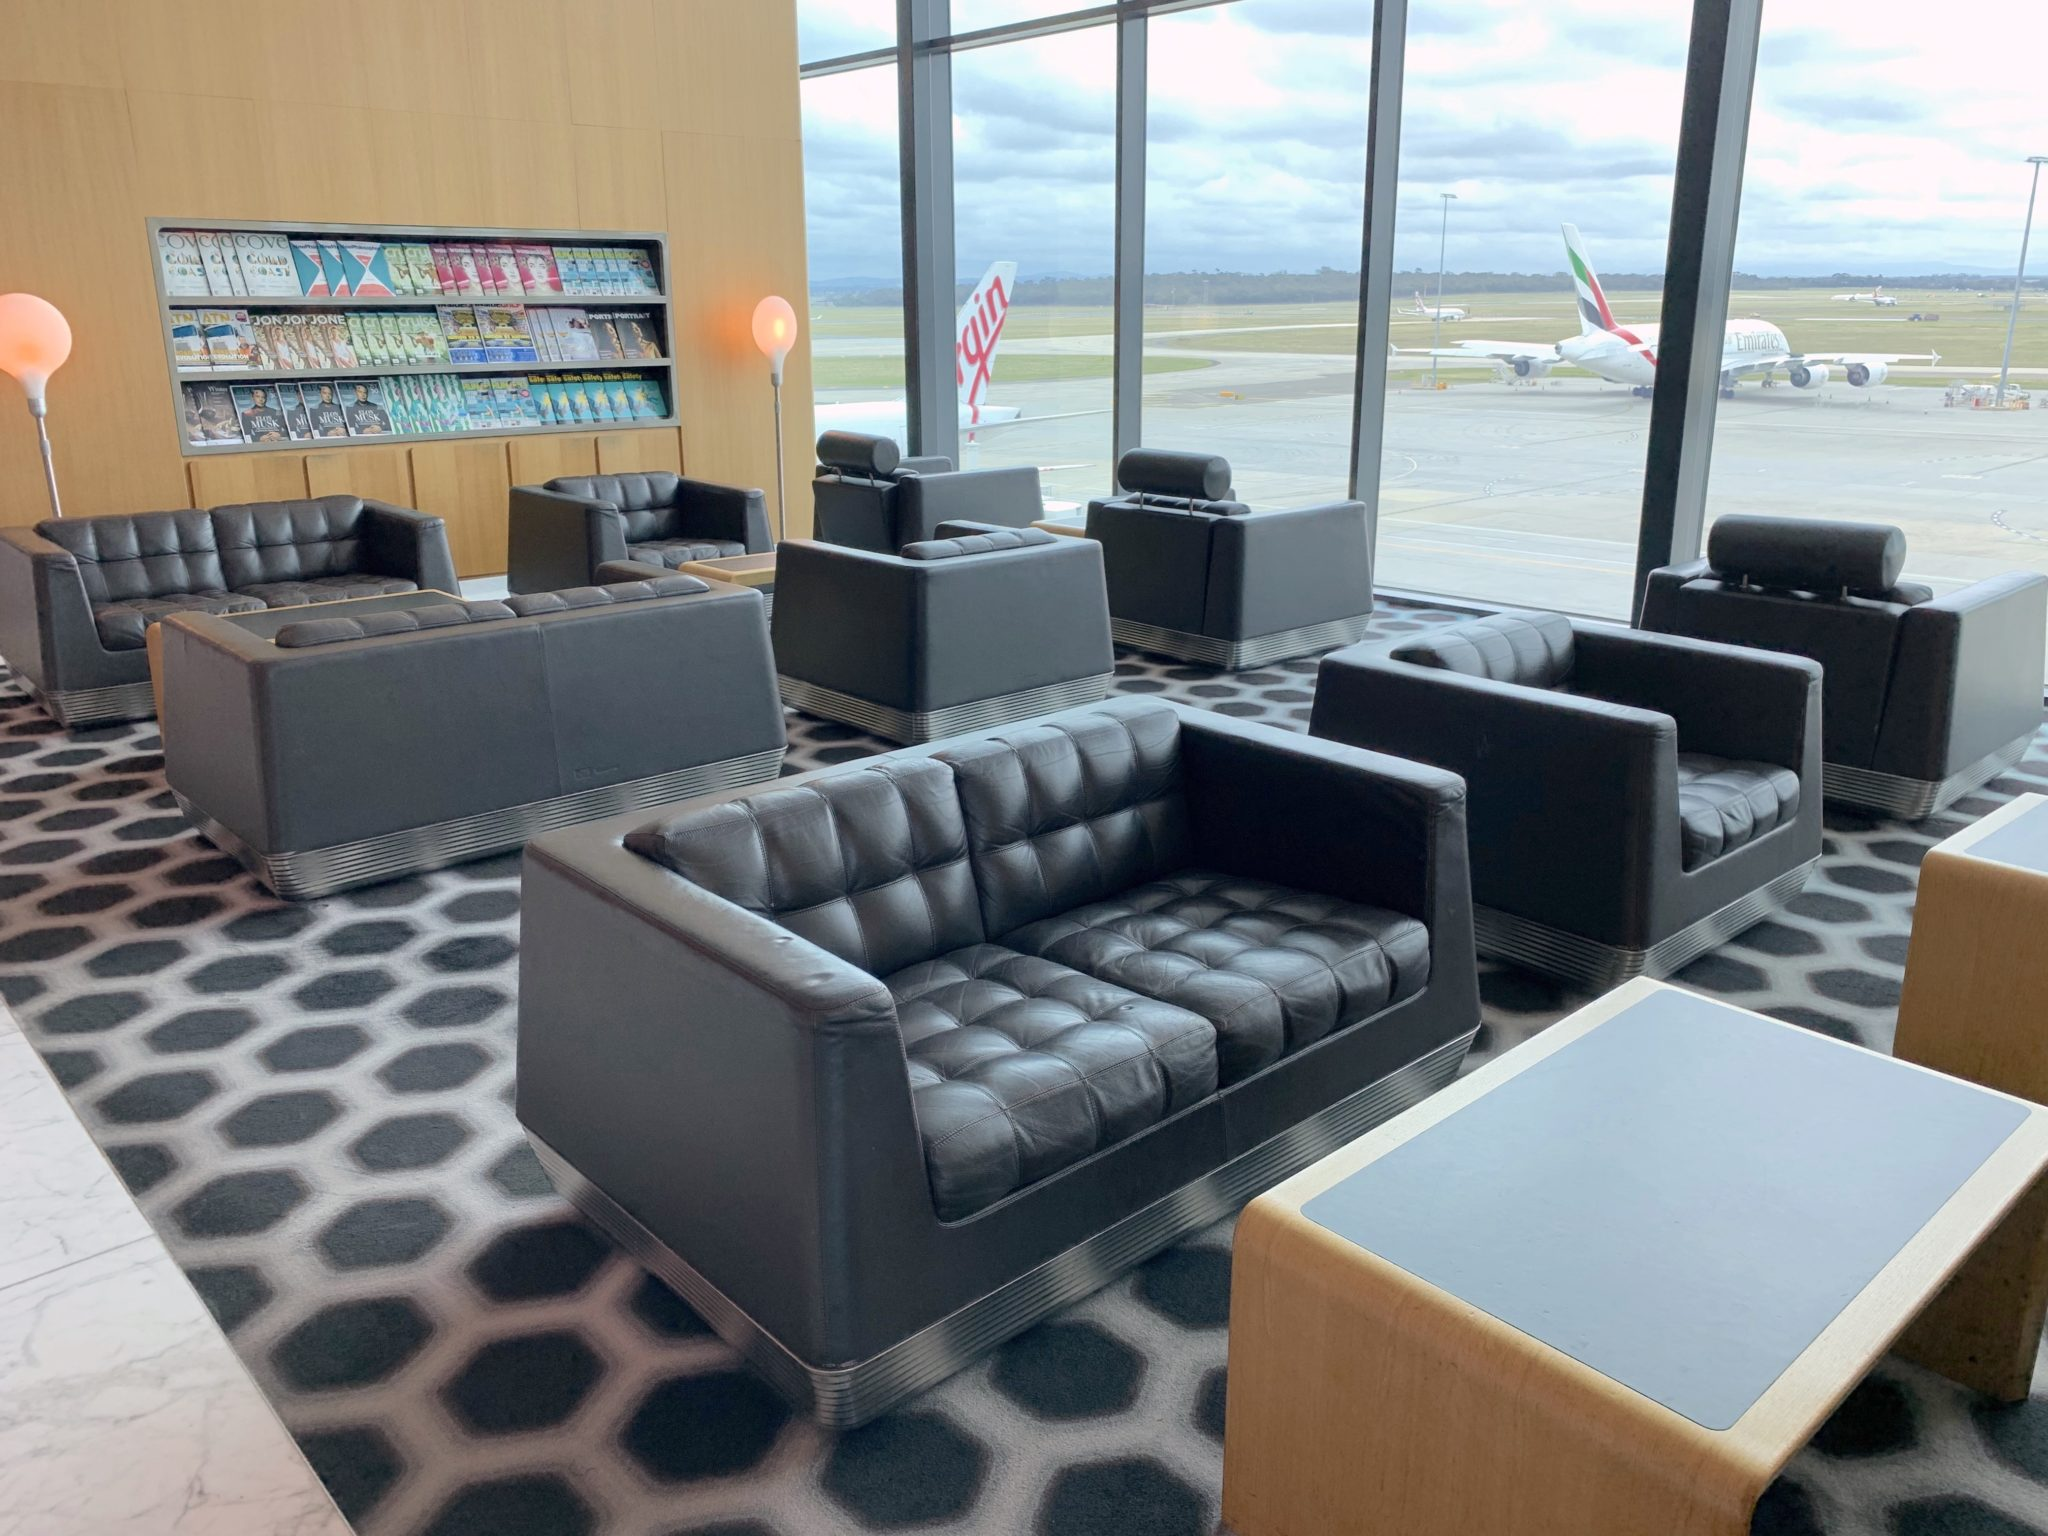 From style to squid, Qantas' first class lounges remain stars - Runway  GirlRunway Girl